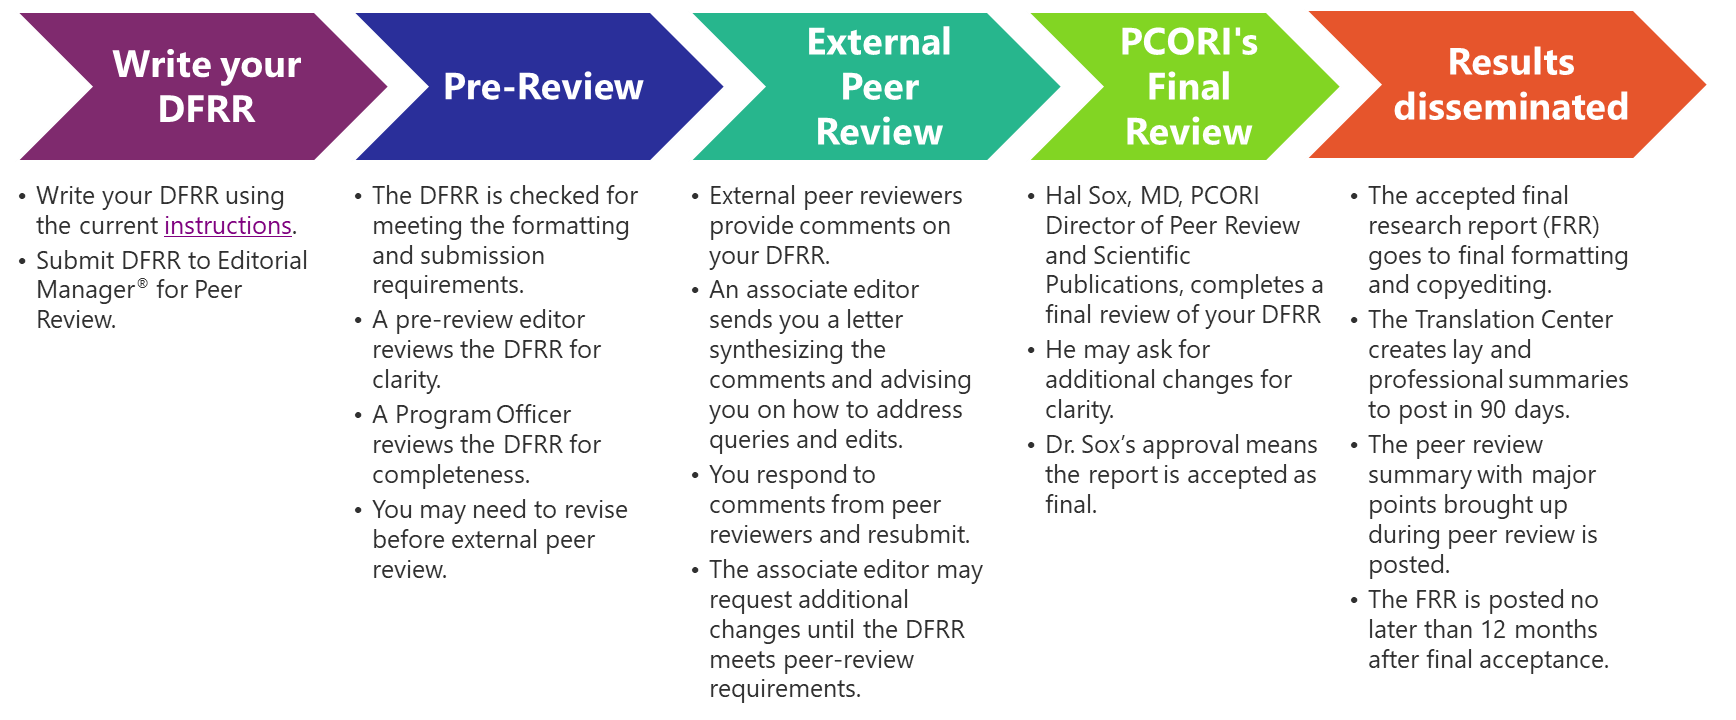 PCORI's Peer-Review Process:  Step 1: Write your DFRR:  -Write your DFRR. -Submit DFRR to Editorial Manager® for peer review  Step 2: Pre-Review: -A pre-review editor reviews your DFRR. -If the pre-review editor requests changes, you must res